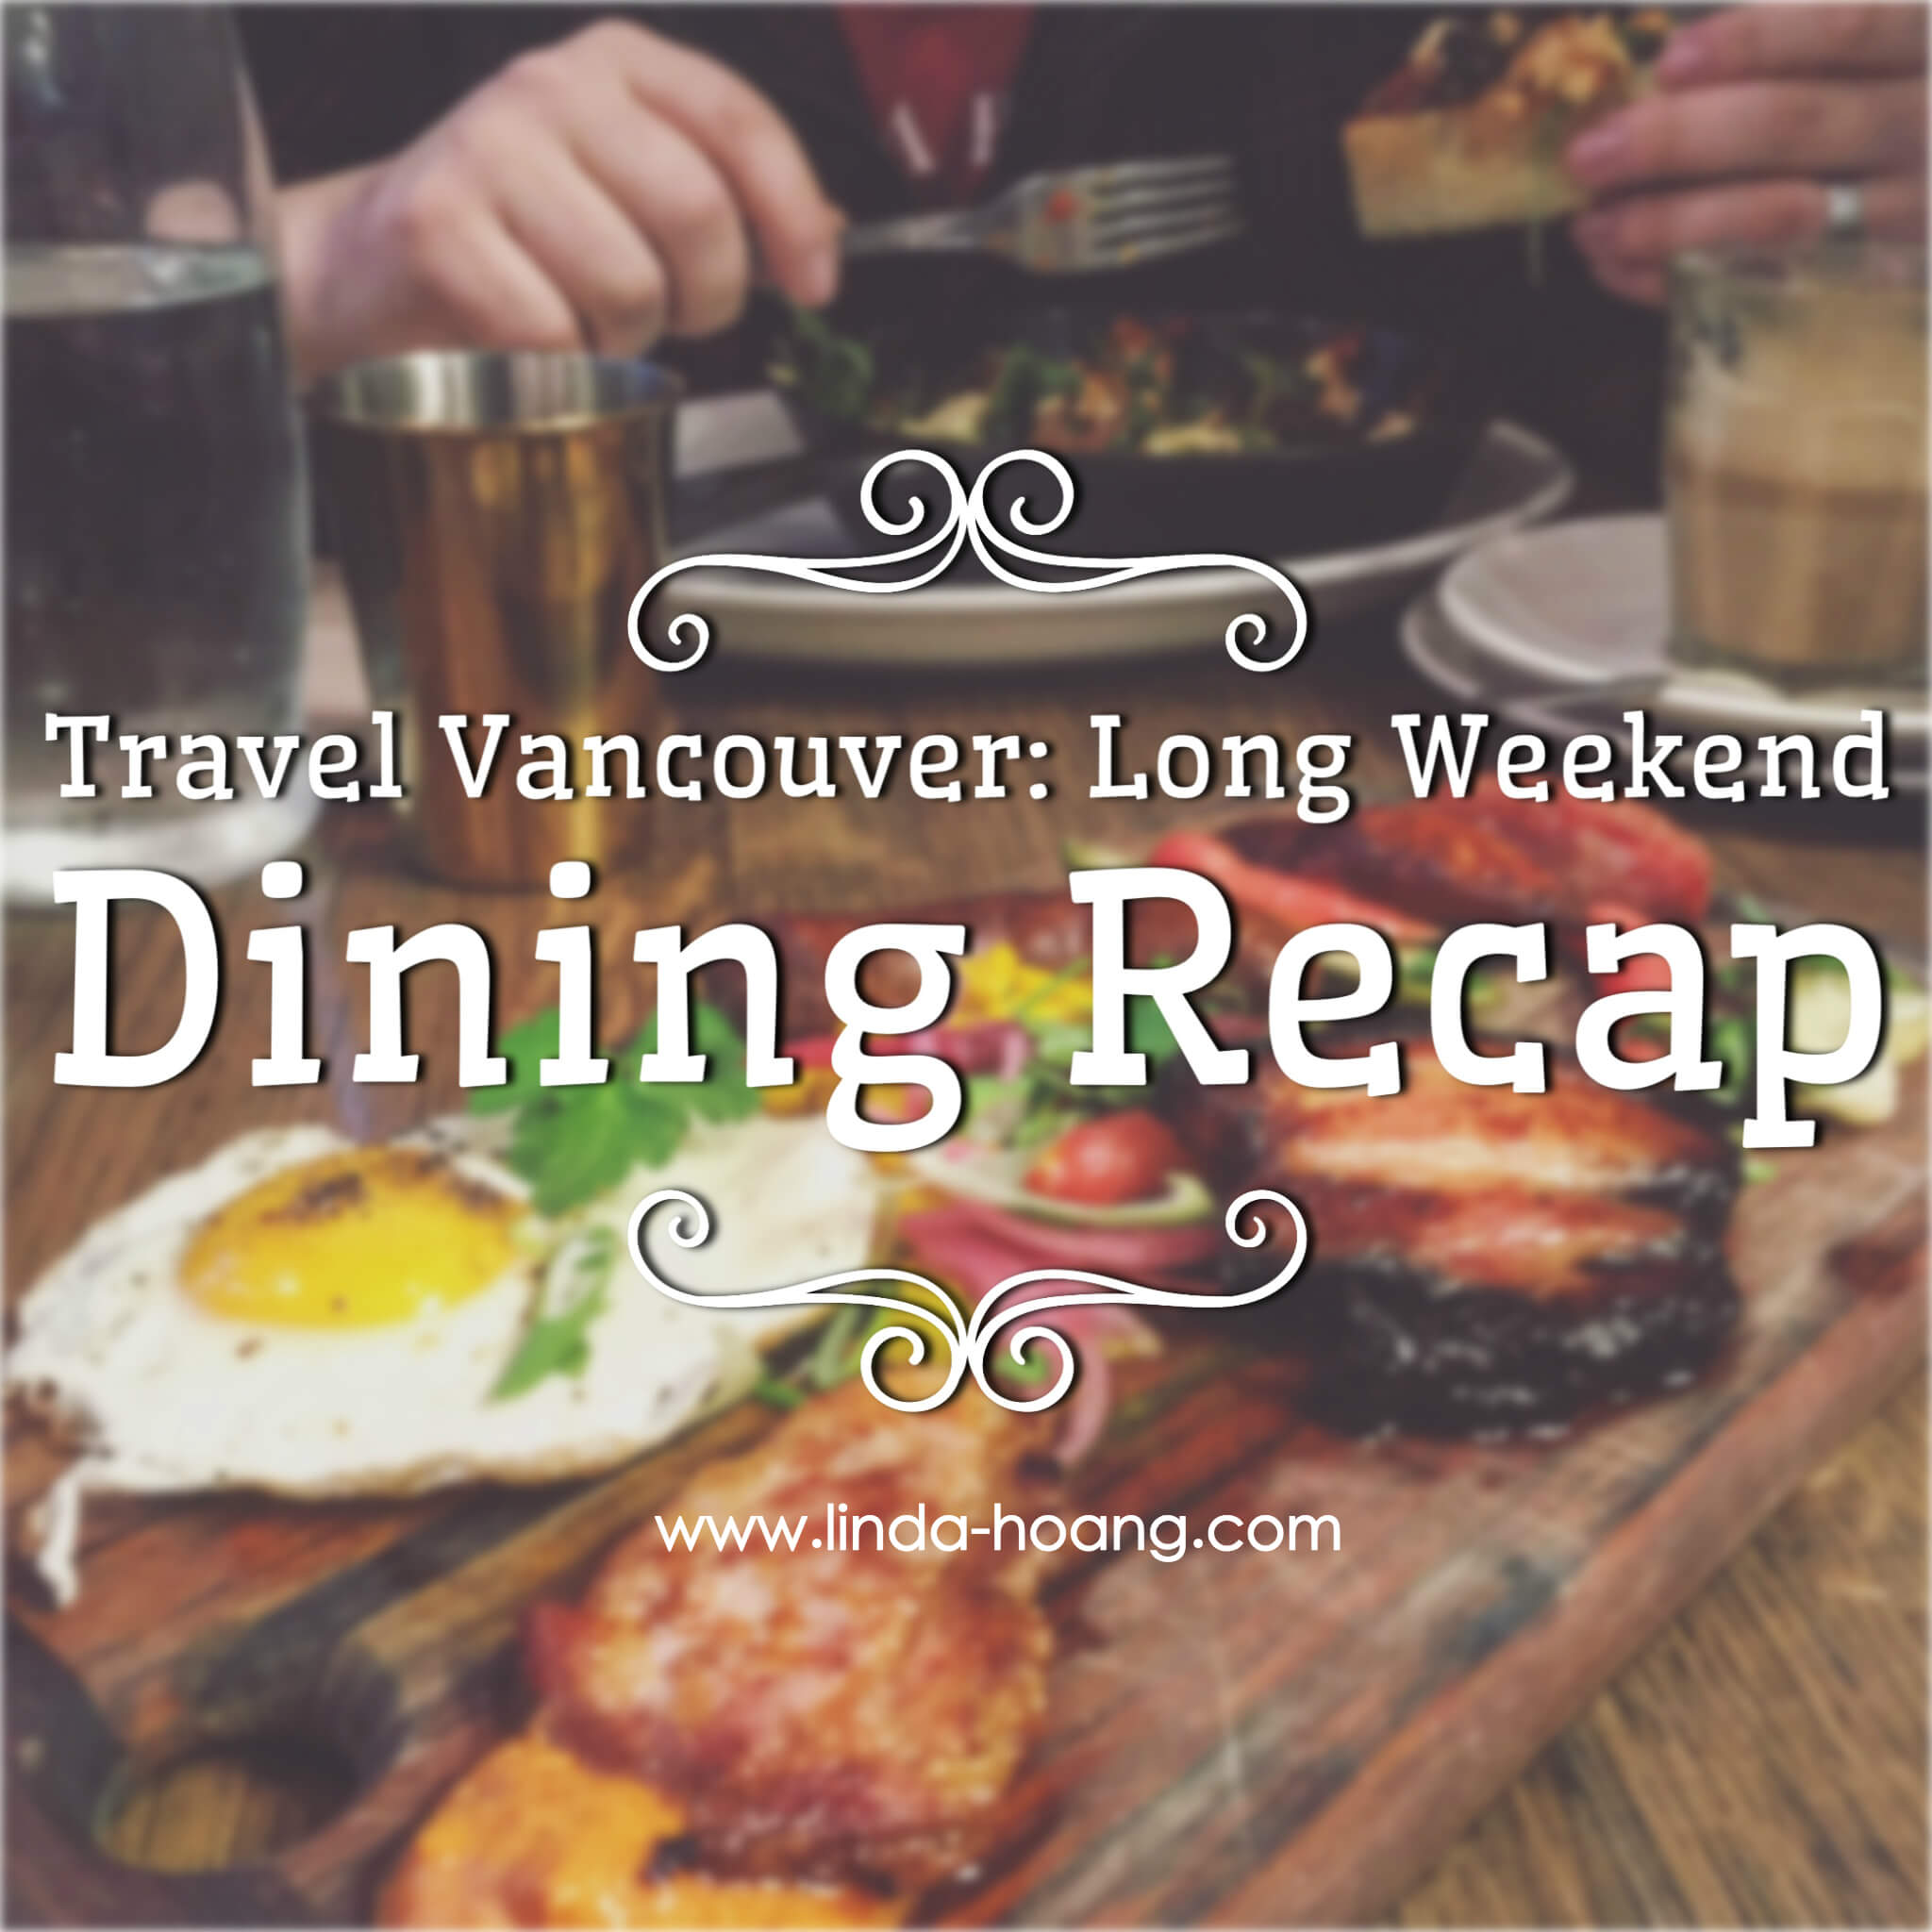 Travel Vancouver - Long Weekend Dining Recap